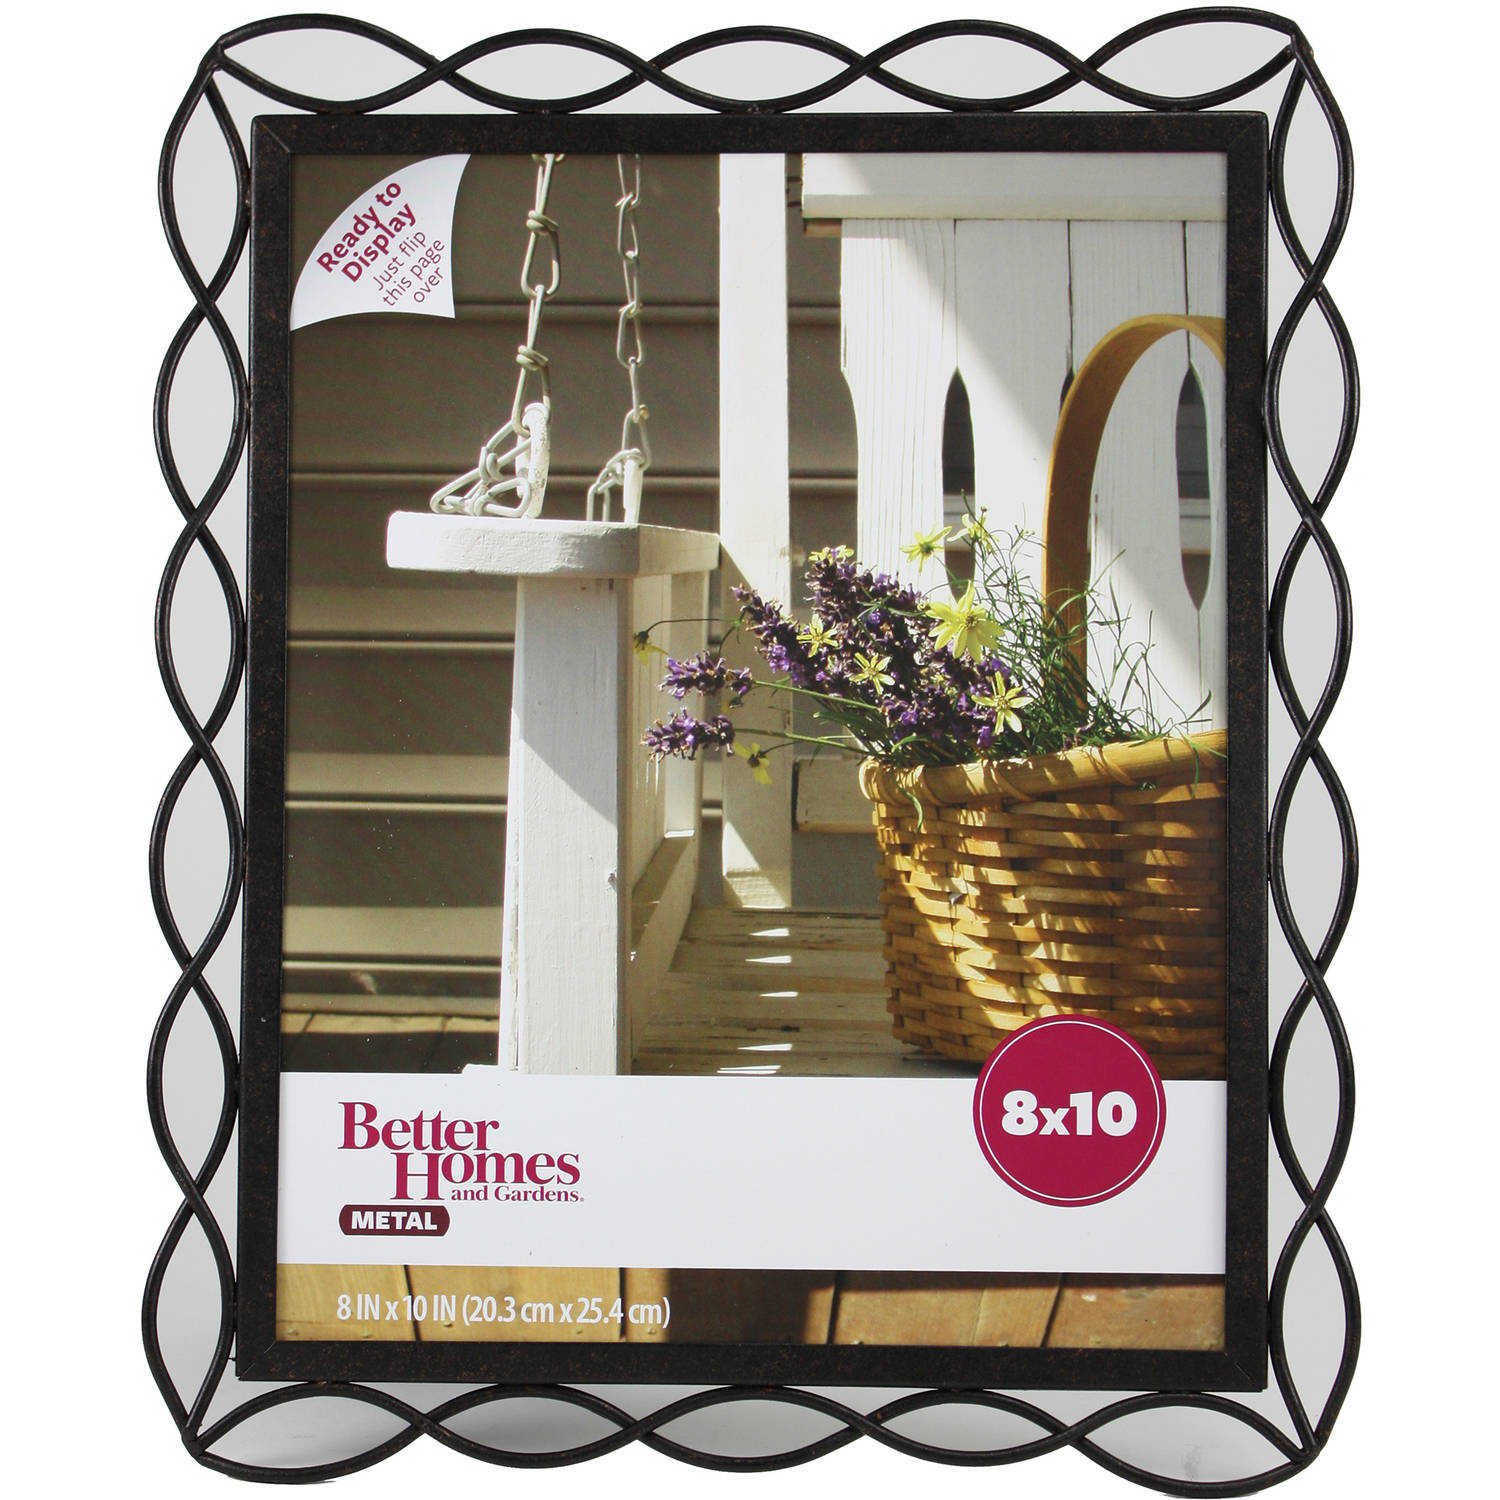 Better Homes and Gardens 8x10 Photo Frame, Tuscan Bronze Finish